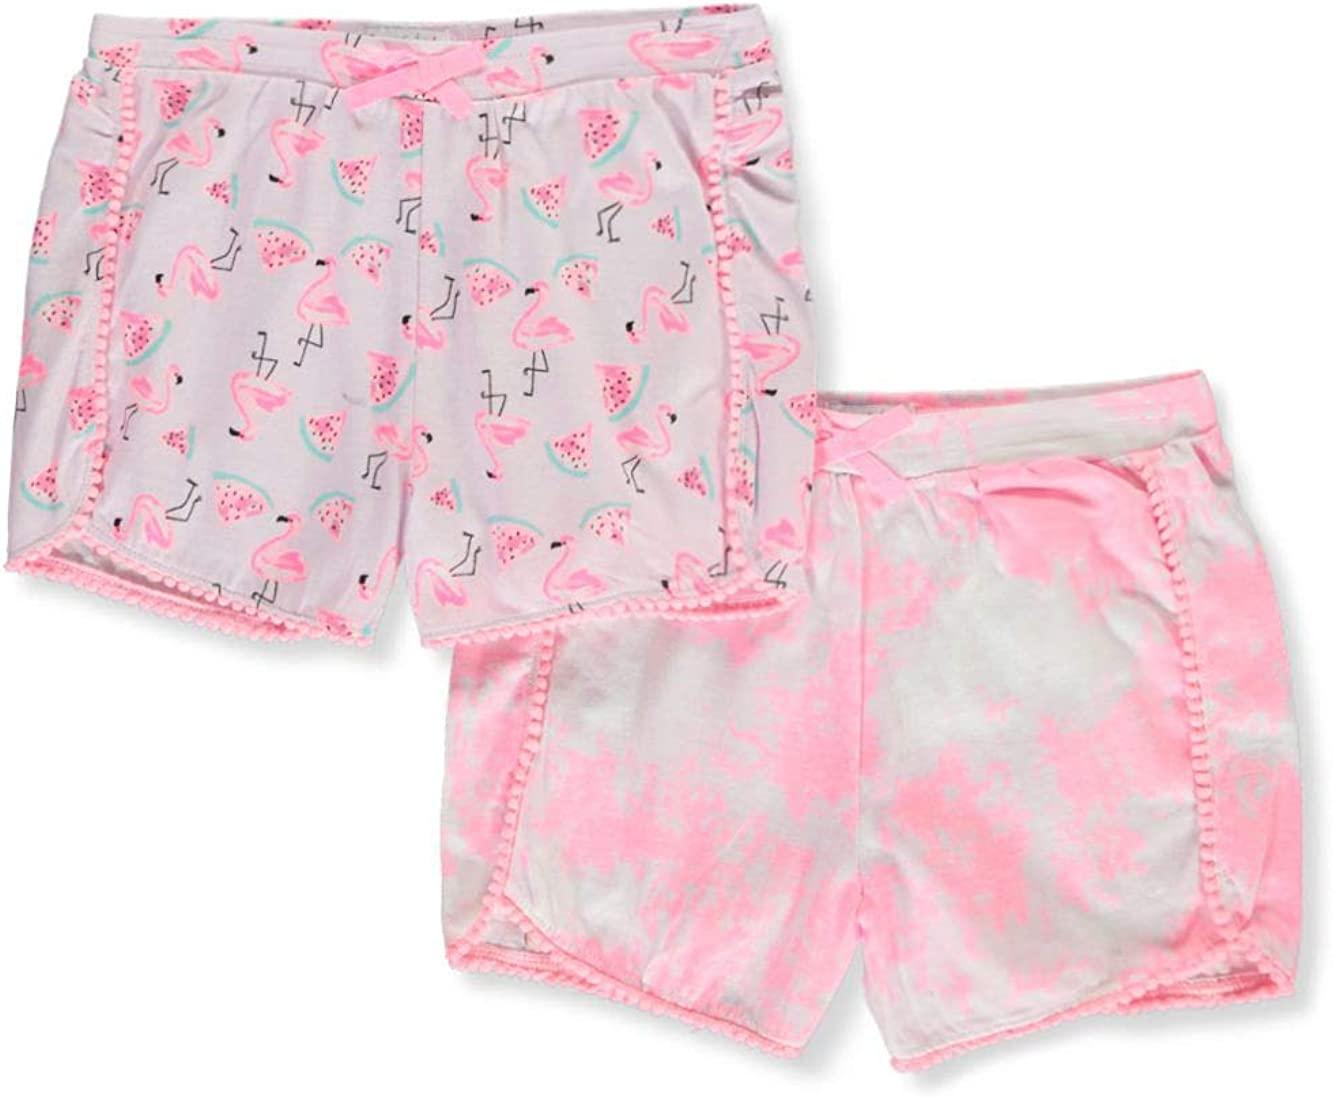 Free Style Revolution Girls 2-Pack Printed Shorts